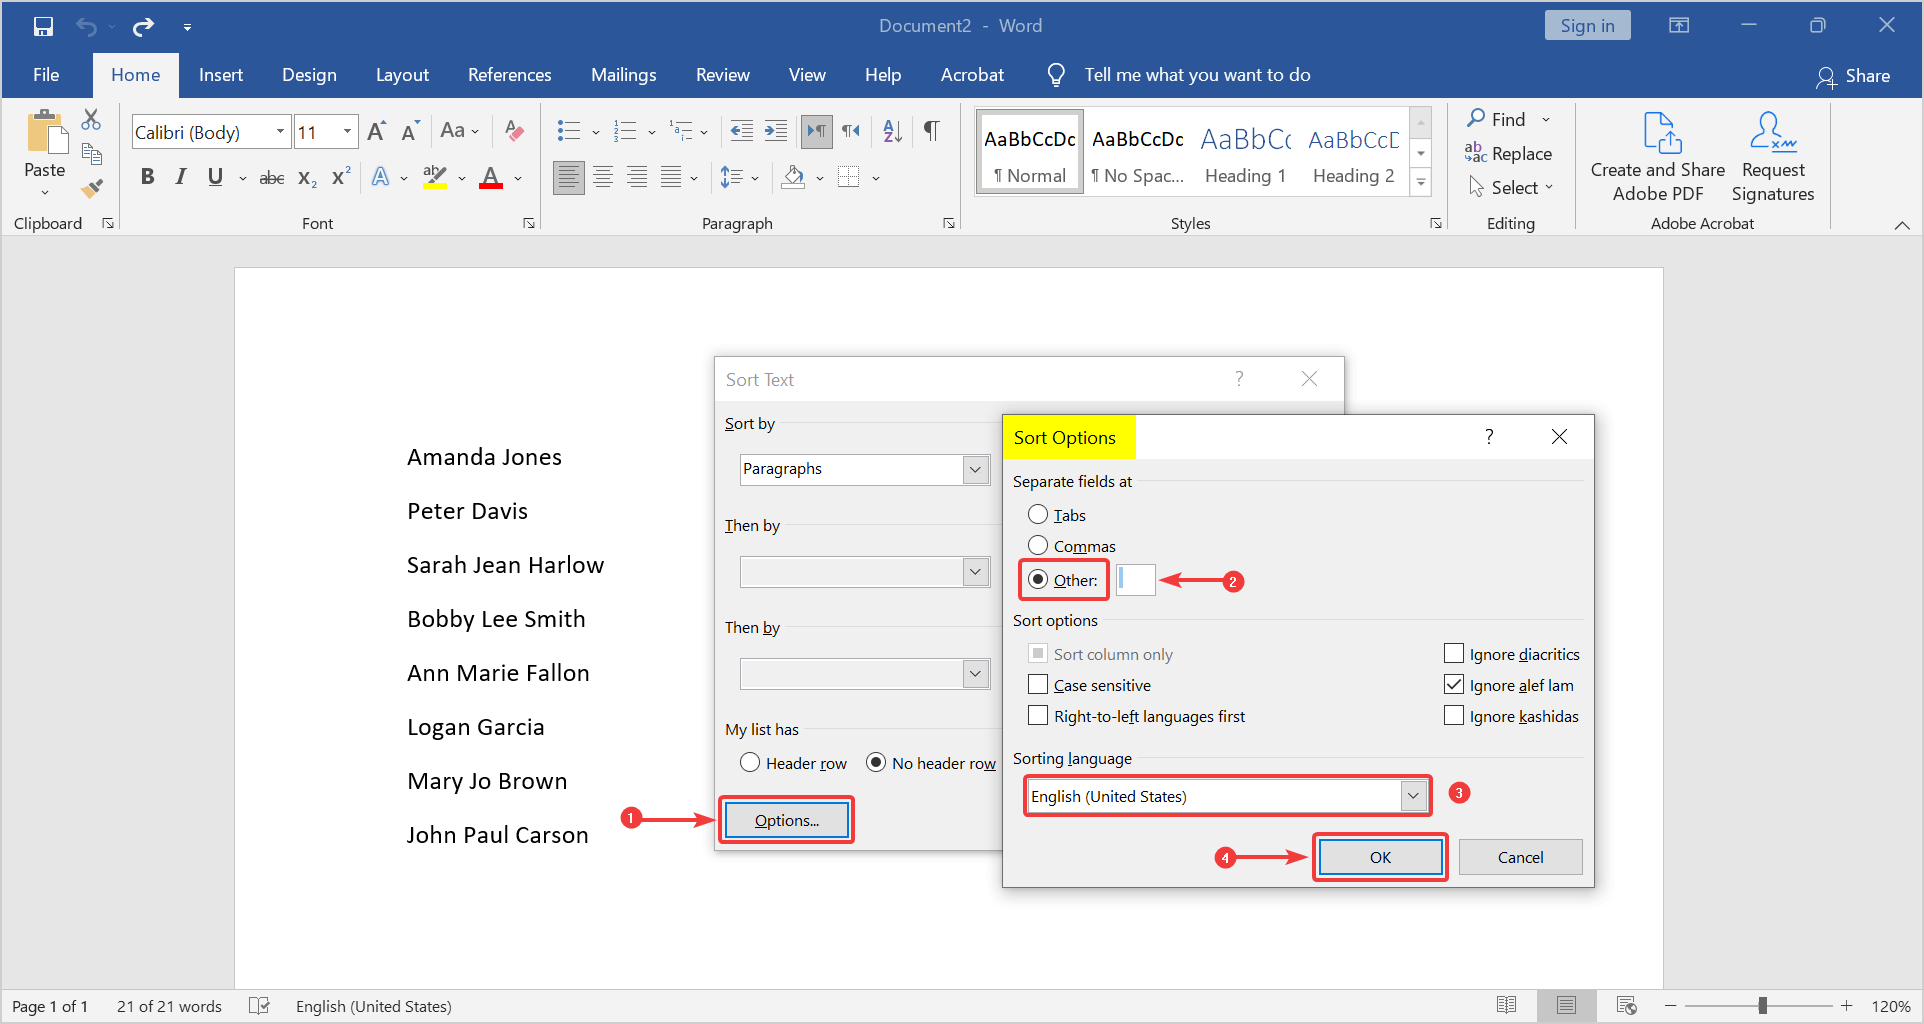 how to arrange names in alphabetical order in word. sort options